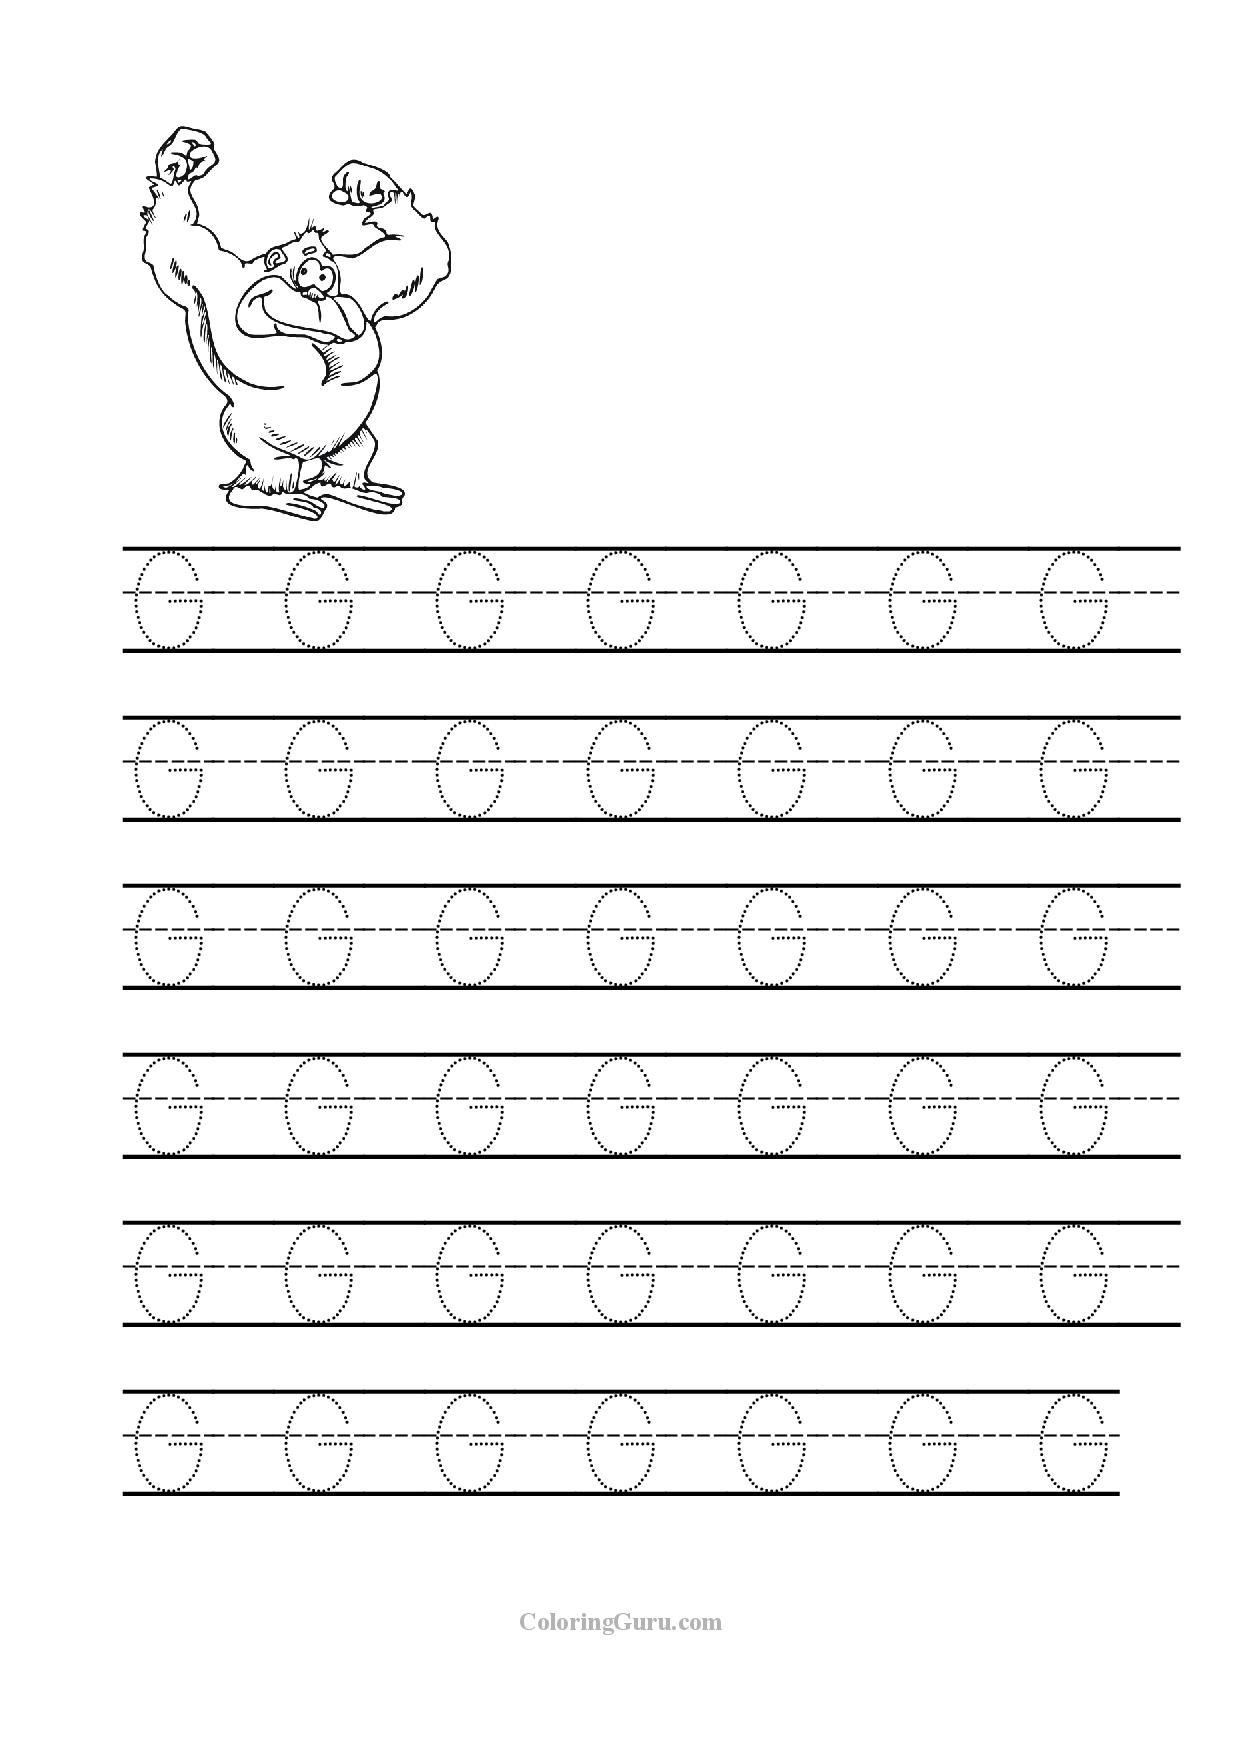 4 Alphabet Worksheets Uppercase Practice Writing Worksheet